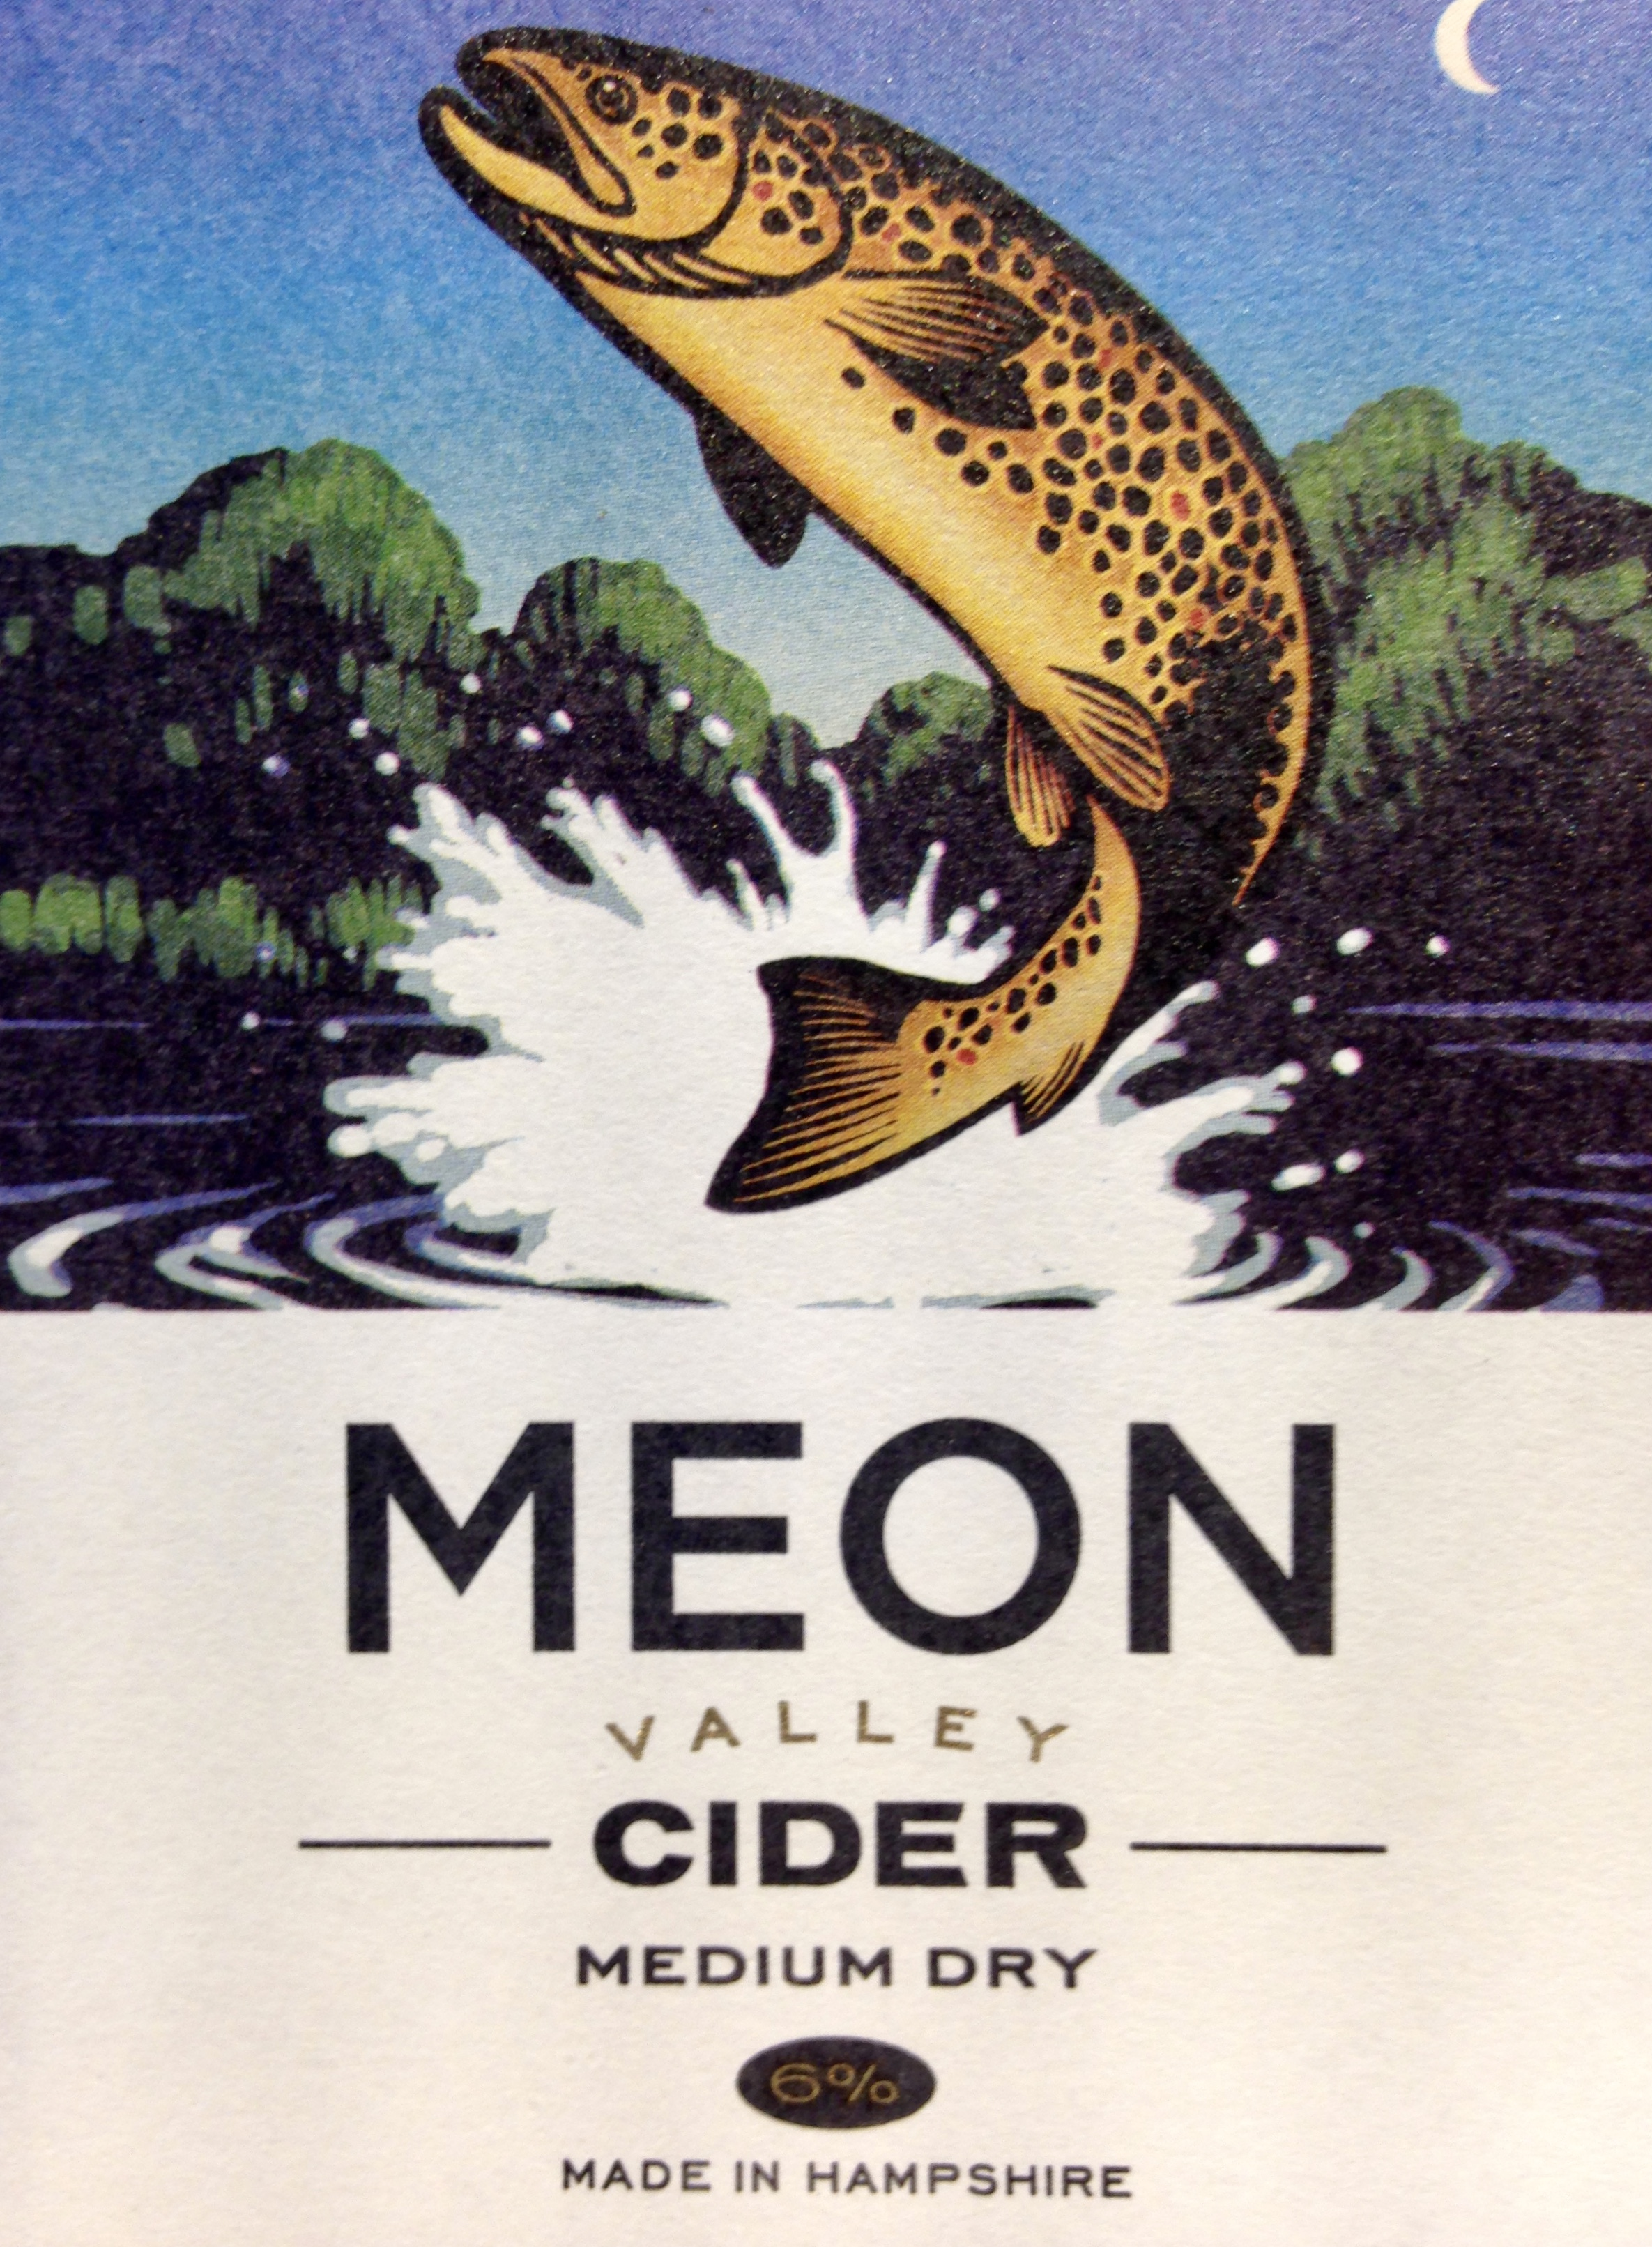 Brown Trout - 6% ABV Medium DryAmber cider cider lightly oaked with vanilla, kiwi fruit, and caramel notes. Good with stilton cheese and desserts. Using local Hampshire and Sussex dessert apples together with bittersweeets from the West CountryJoint-second Cider of the Festival CAMRA Southampton 2018Bottles Available, BIB available end June 2019:Sparkling in 500ml bottles (Cases of 12)Still in 20 Litre Bag in Boxes